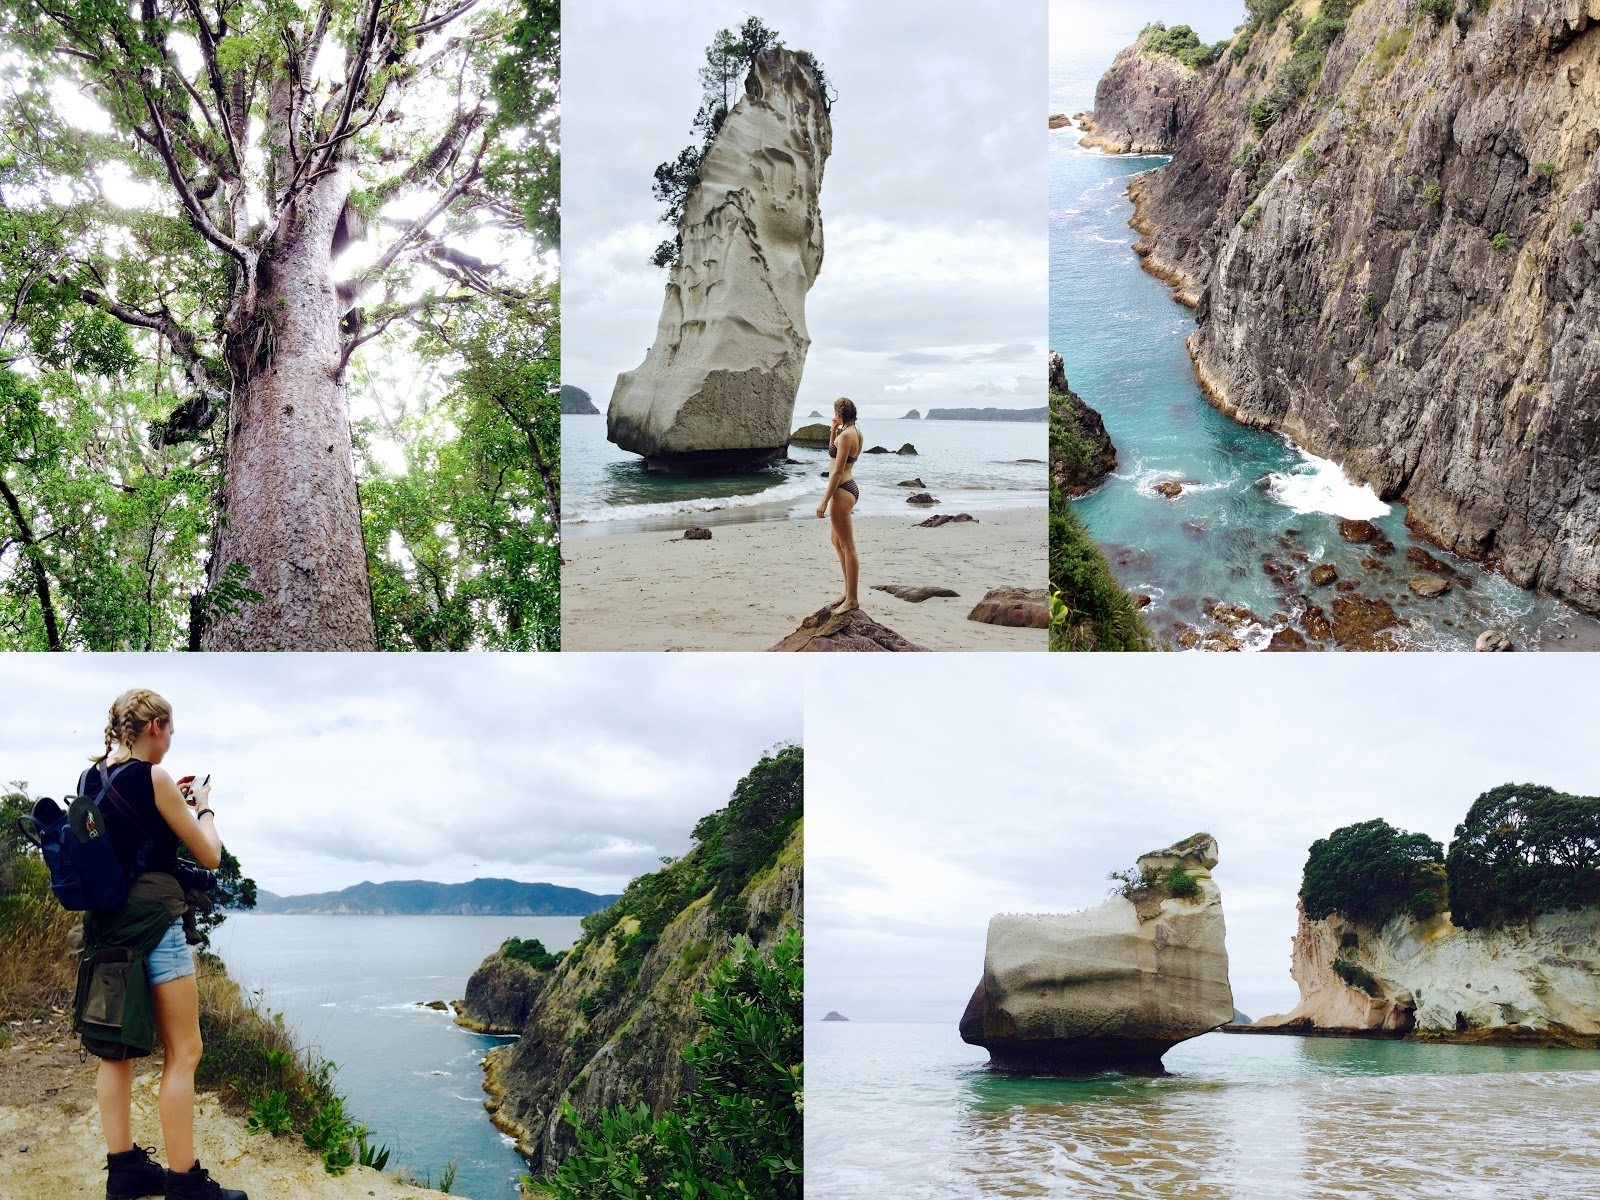 New Zealand's best hikes | Waipoua Forest, Urupukapuka Island & Cathedral Cove Walk